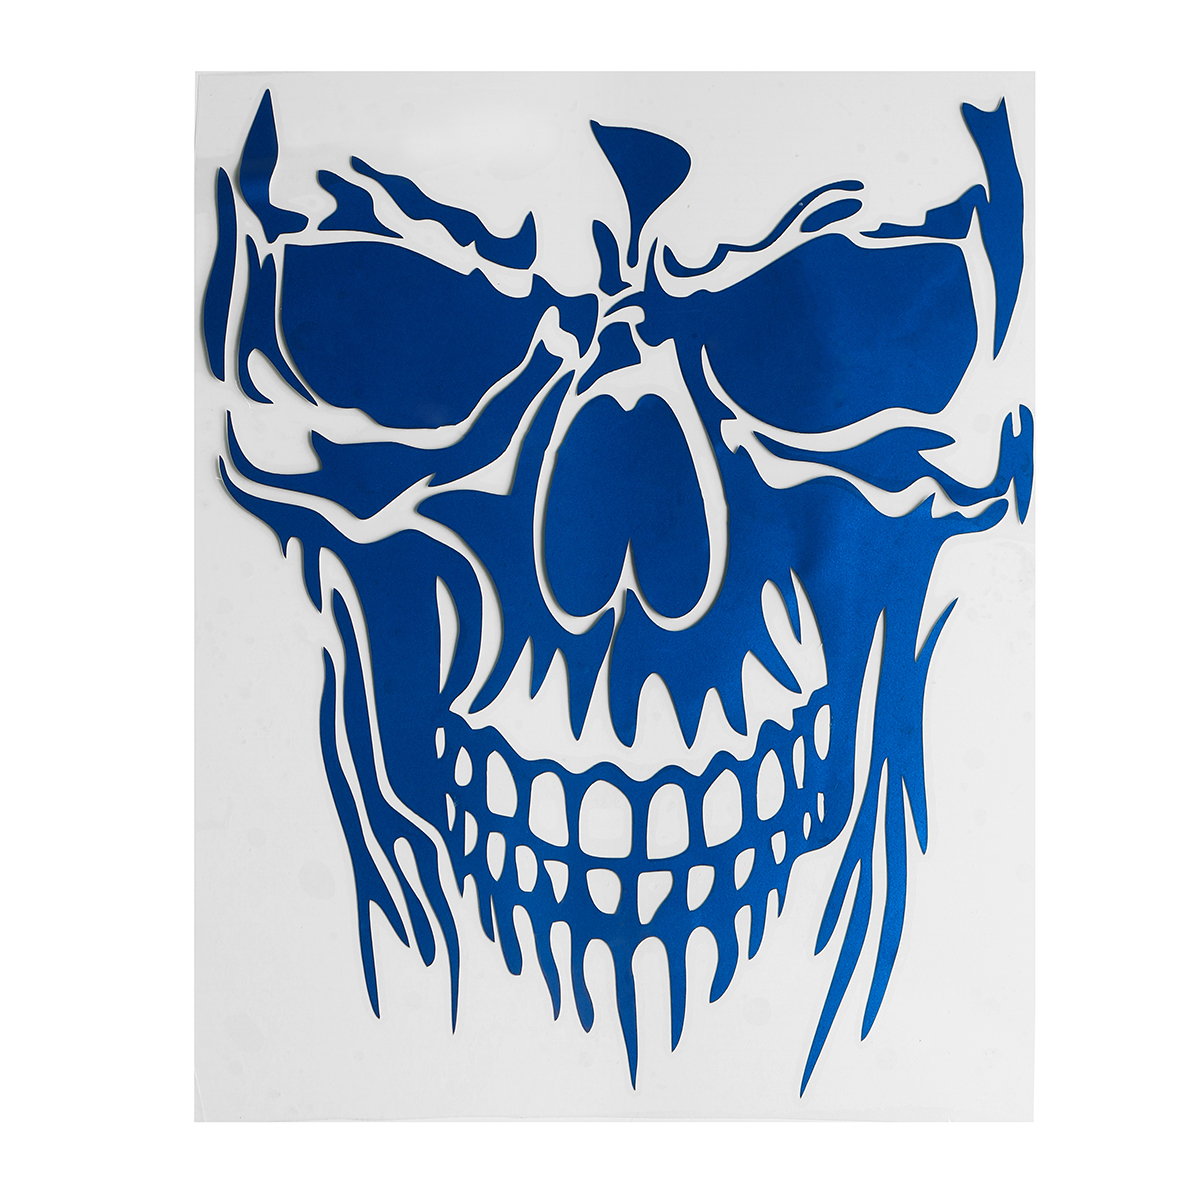 23 x 29.5cm Skull Hood Car Stickers Vinyl Decals Auto Body Truck Tailgate Window Door Universal